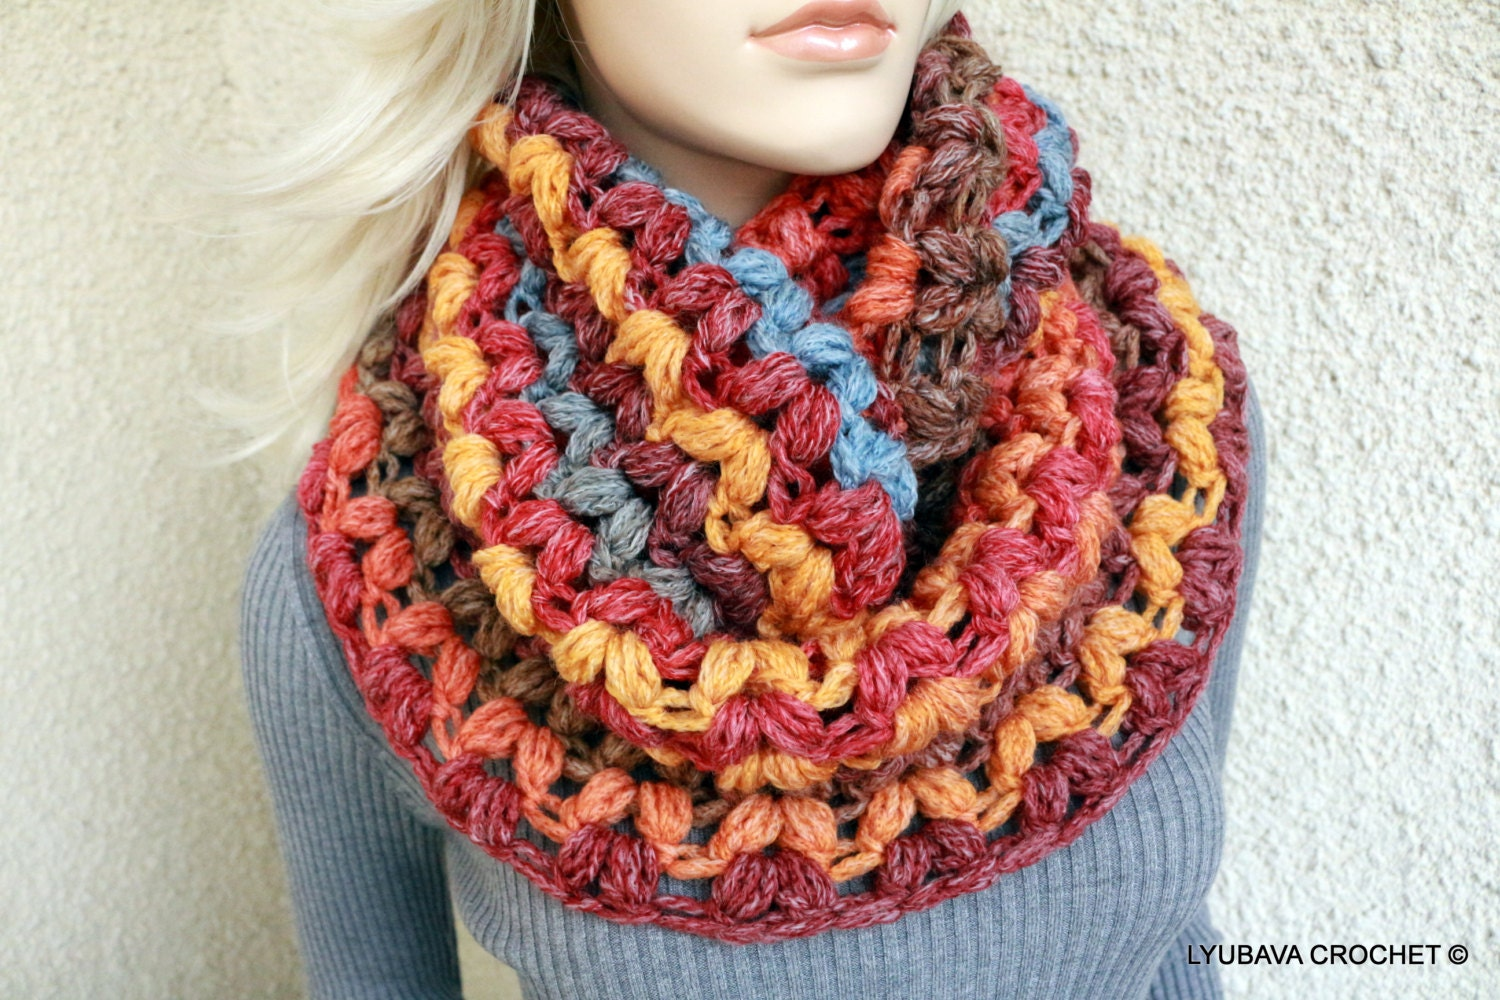 Crochet scarf pattern infinity scarf pattern crochet puff stitch this is a digital file bankloansurffo Image collections